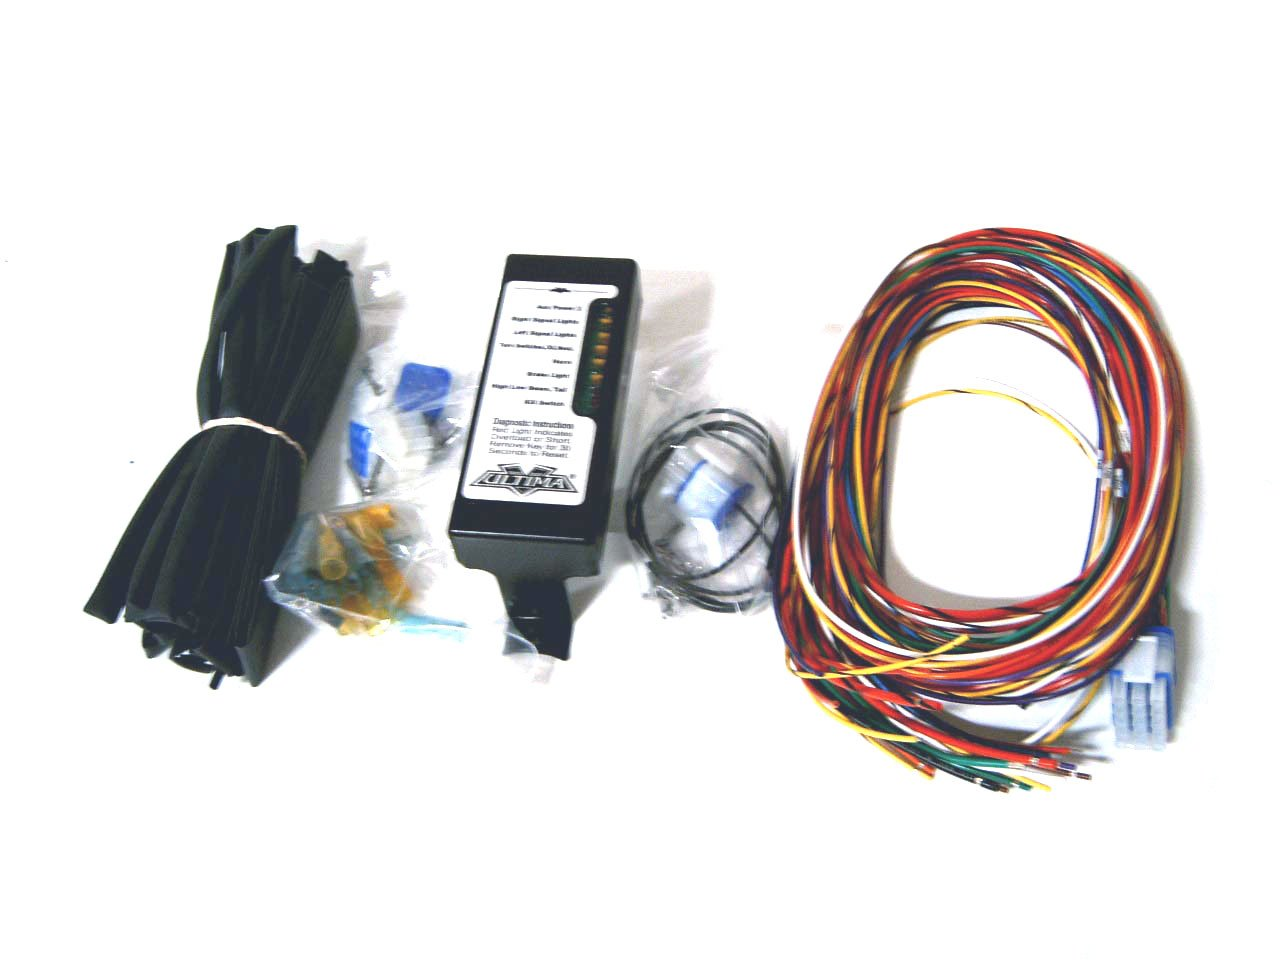 61DV2Bq5%2BHL._SL1280_ amazon com ultima complete wiring harness kit for harley davidson where to buy a trailer wiring harness at eliteediting.co